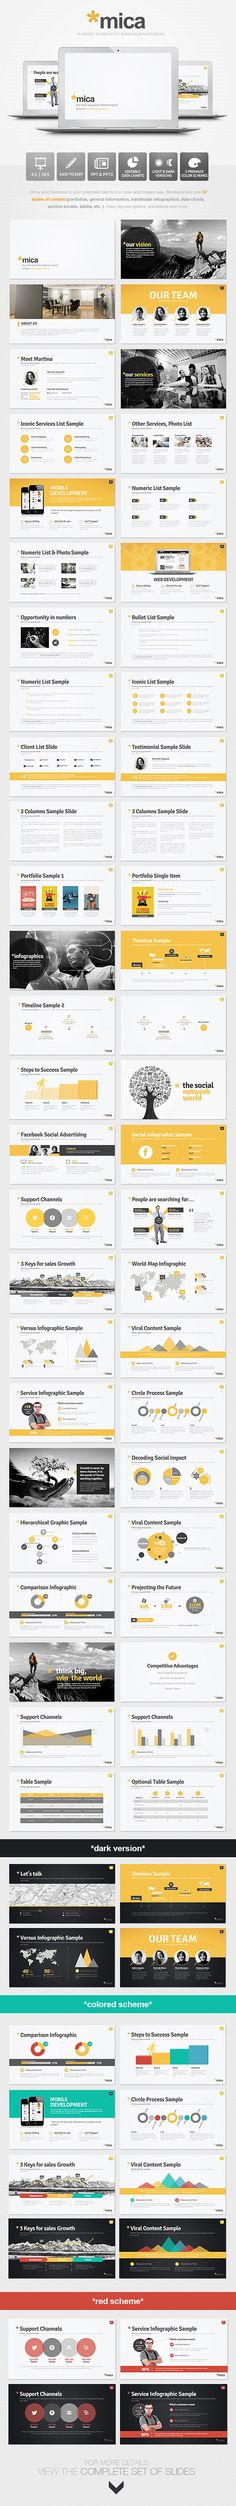 Oblique - PowerPoint Presentation Template Powerpoint - powerpoint presentations template